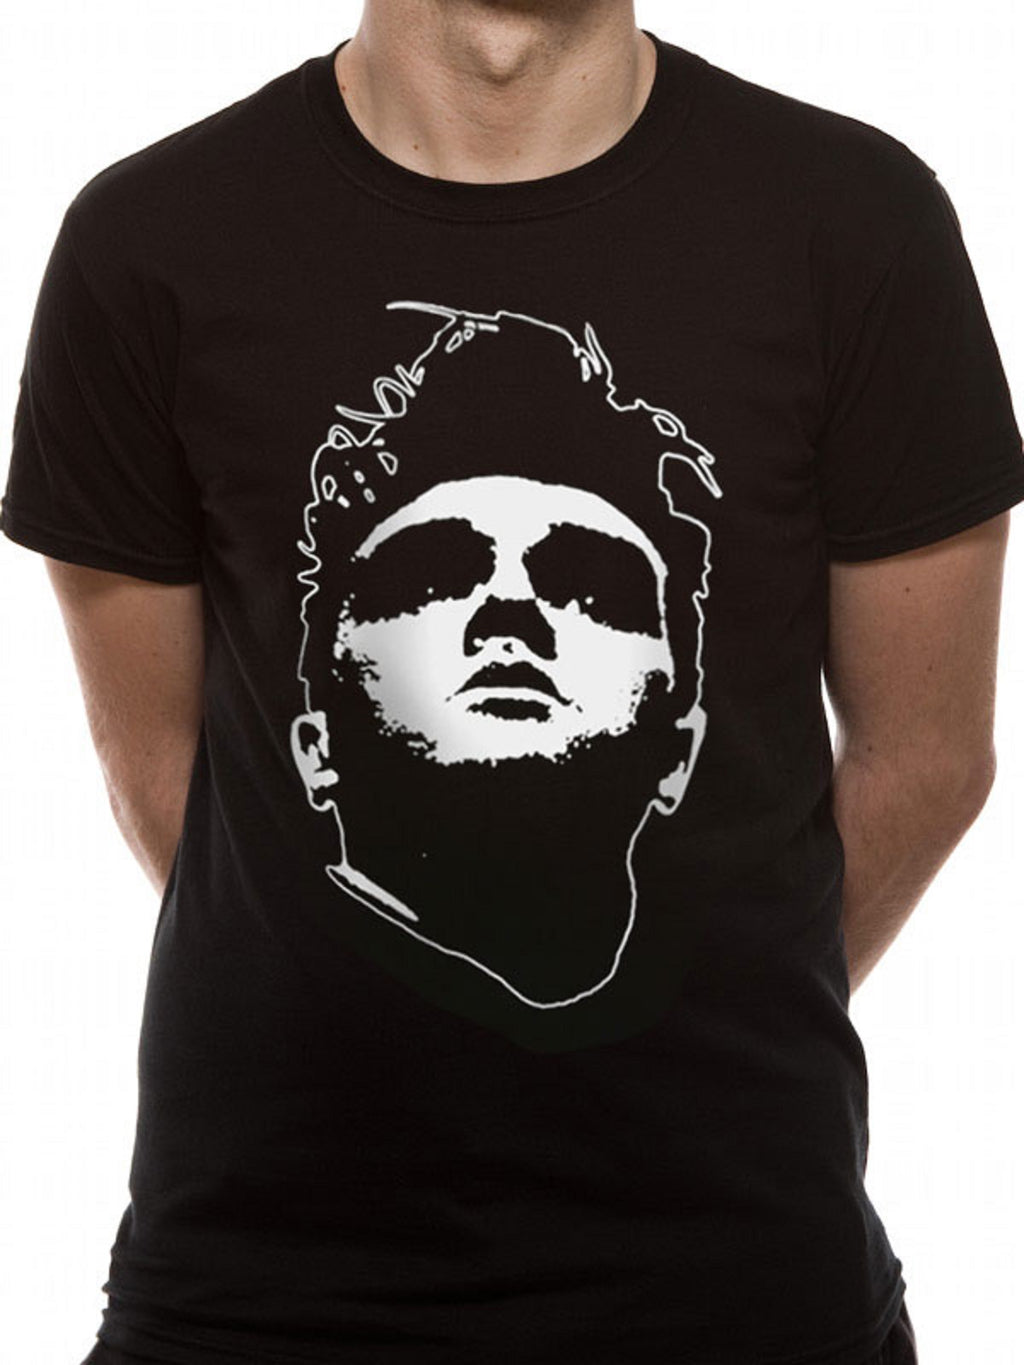 Morrissey Head T-Shirt - Scattee